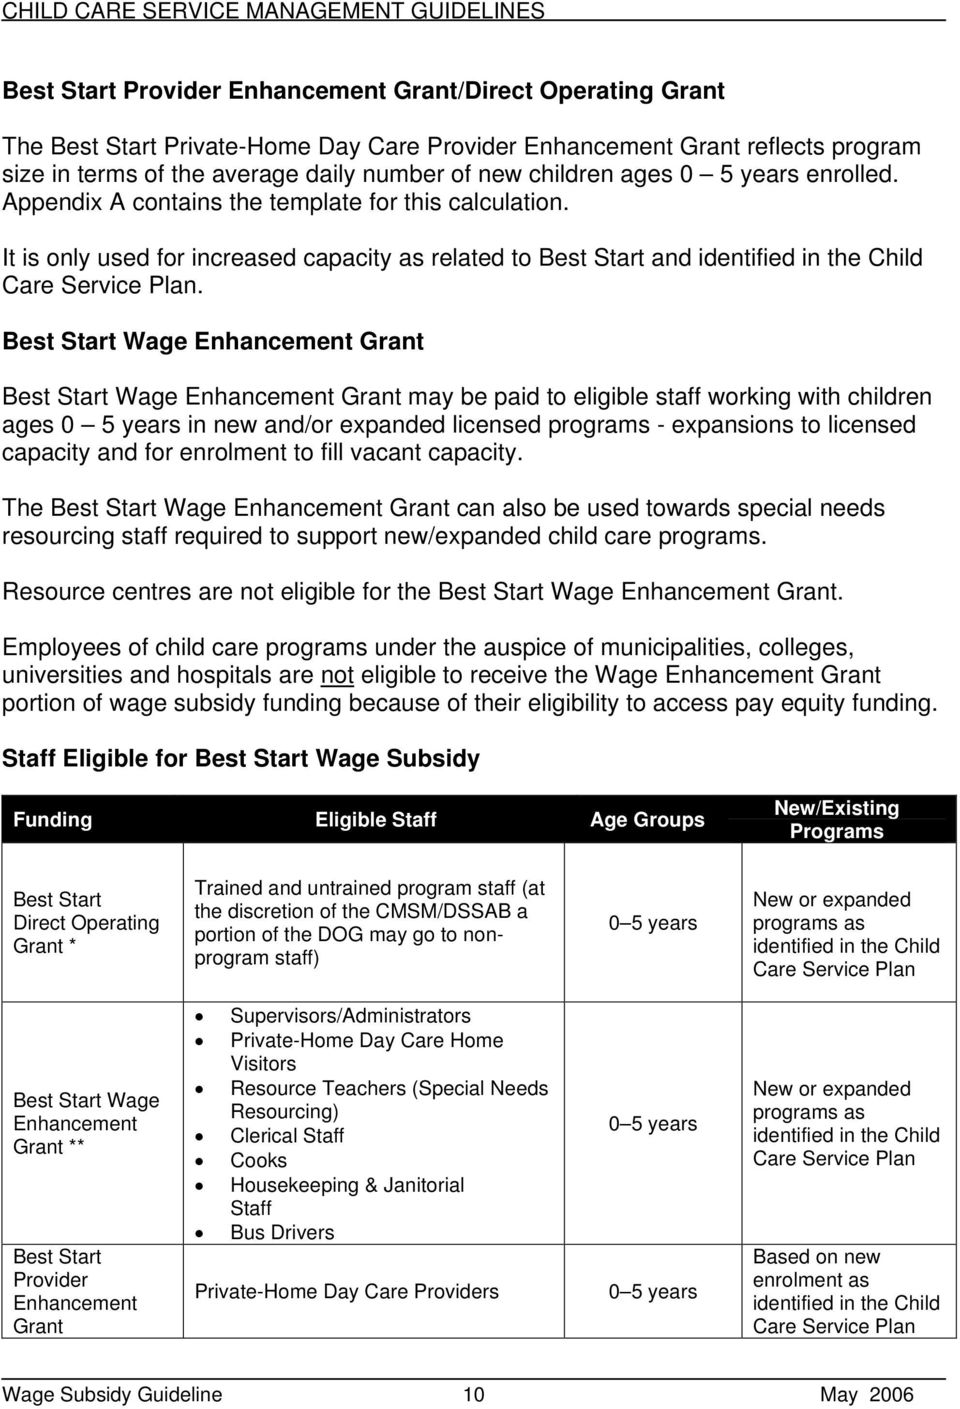 Best Start Wage Enhancement Grant Best Start Wage Enhancement Grant may be paid to eligible staff working with children ages 0 5 years in new and/or expanded licensed programs - expansions to